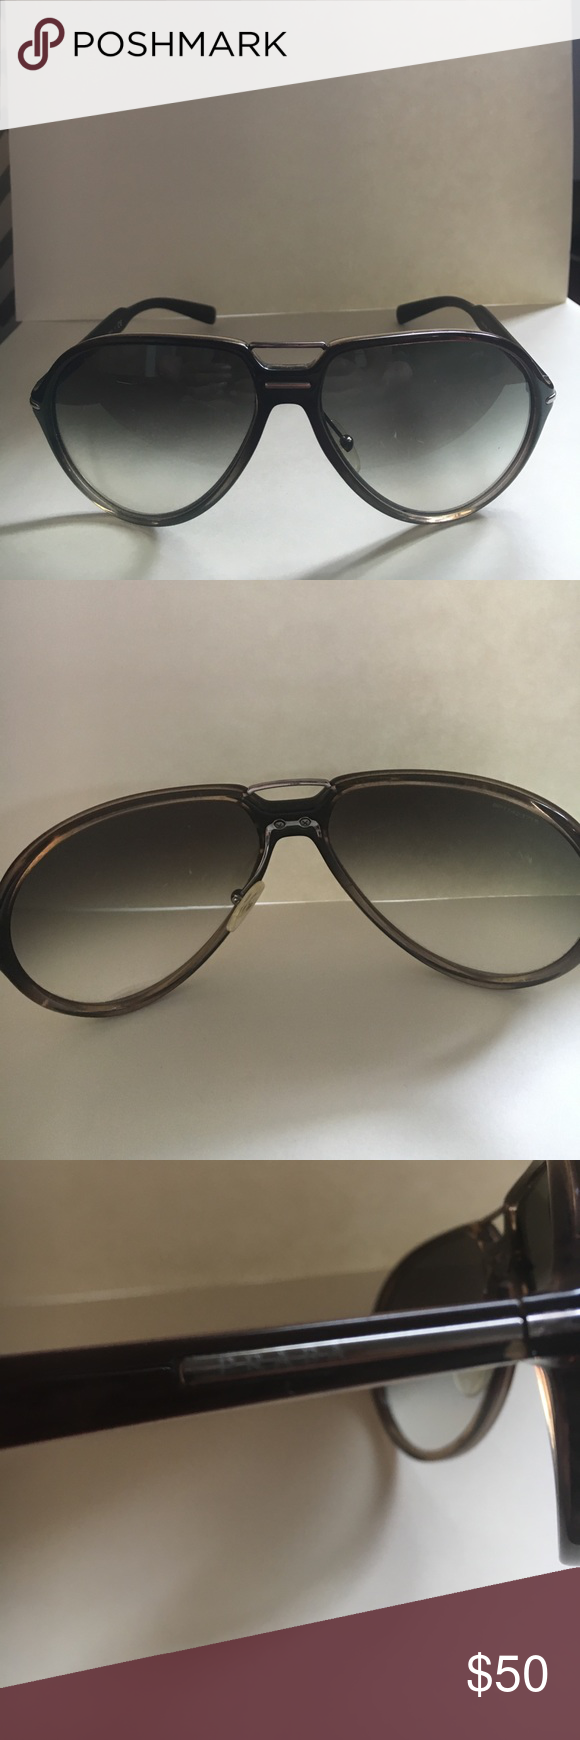 564c3281dd8 ... authentic prada sunglasses used condition is worn out. some scratches  on the lenses the a04df